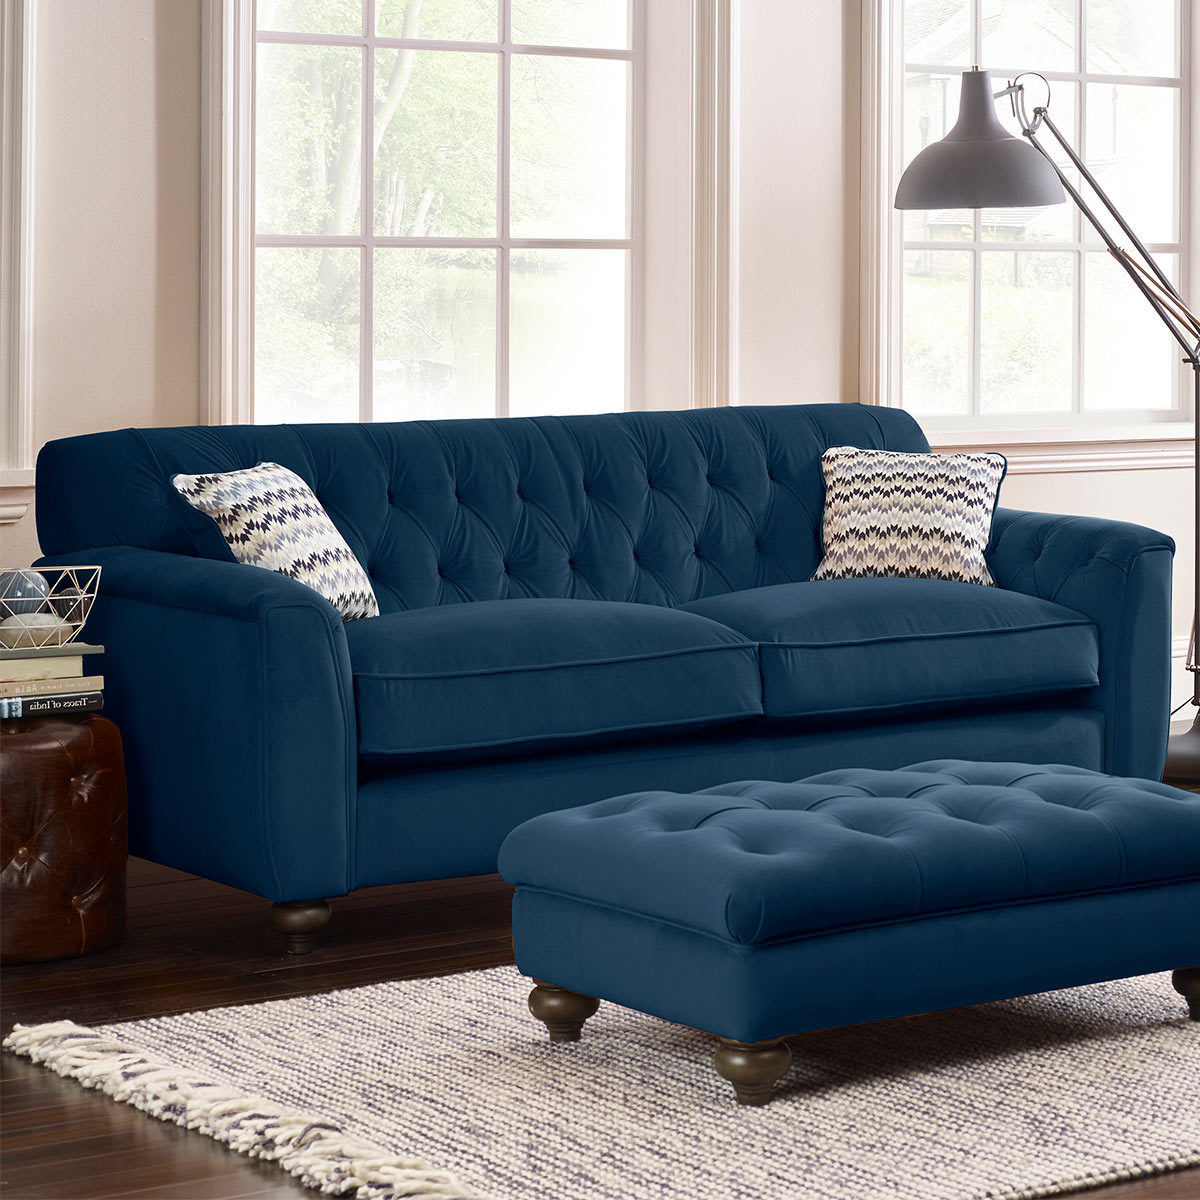 Lyvia Pillowback Sofa Sectional Sofas Pertaining To Favorite Avante Button Back 4 Seater Velvet Sofa With 2 Accent (View 6 of 25)